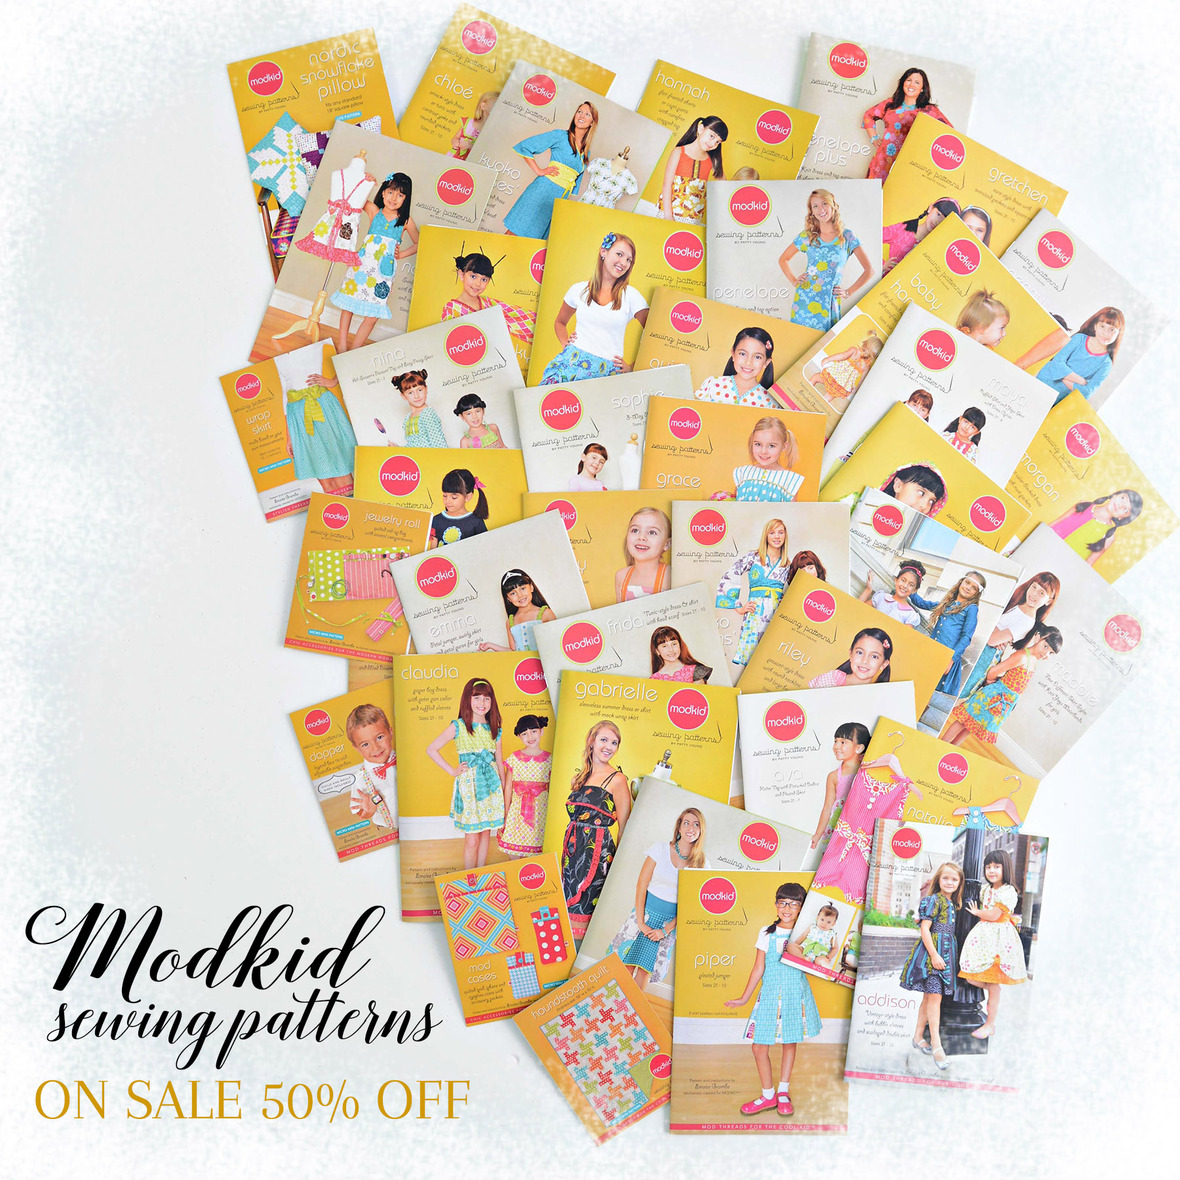 Modkid Sewing Patterns On Sale with frosty border 6x6